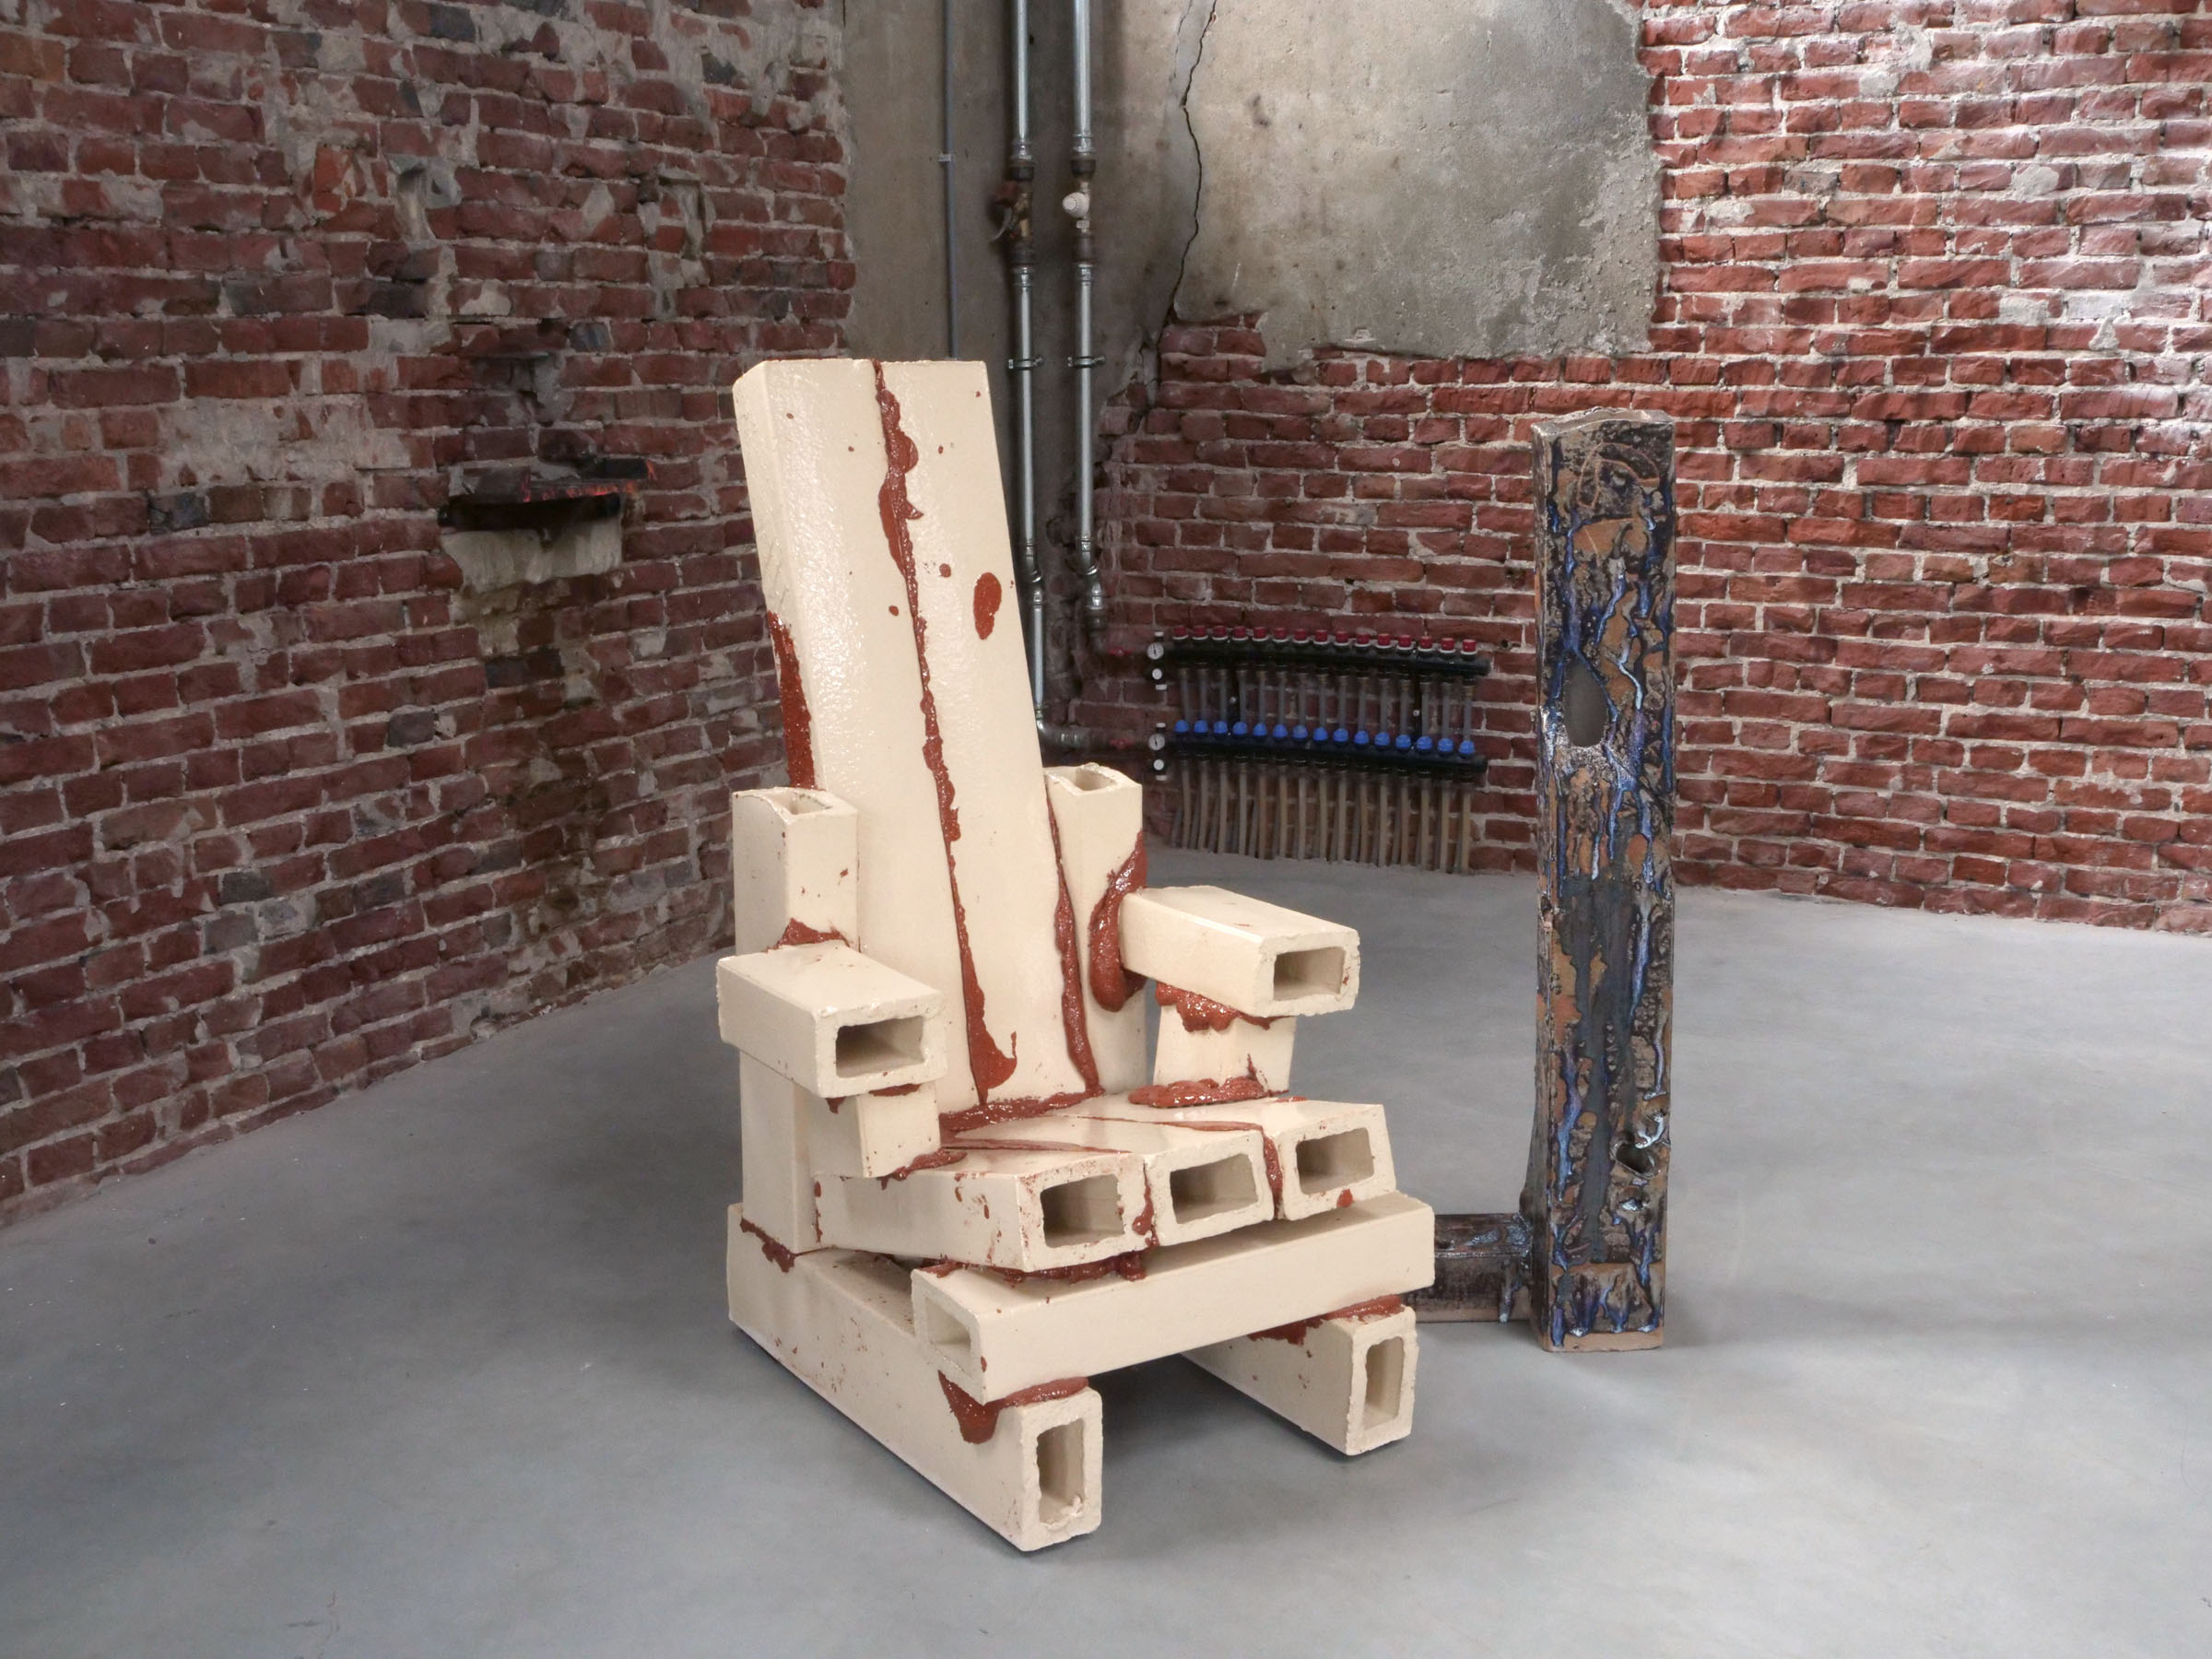 Rietveld chair brutal version - clay, gl